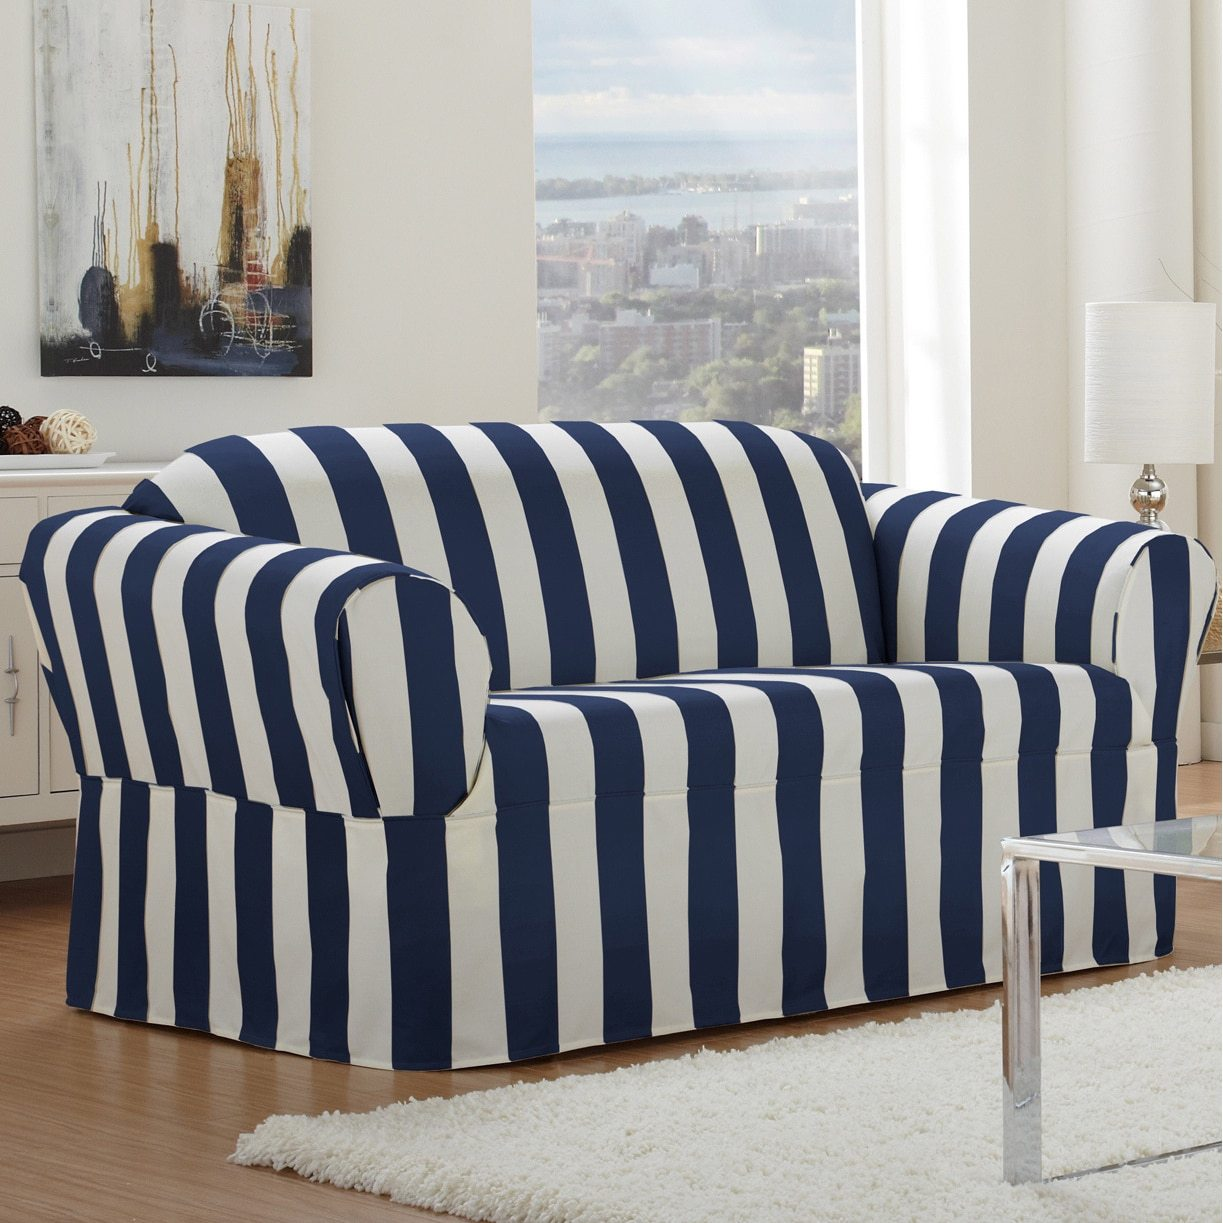 overstock sofa covers art van and loveseat 5 steps to choosing a durable slipcover